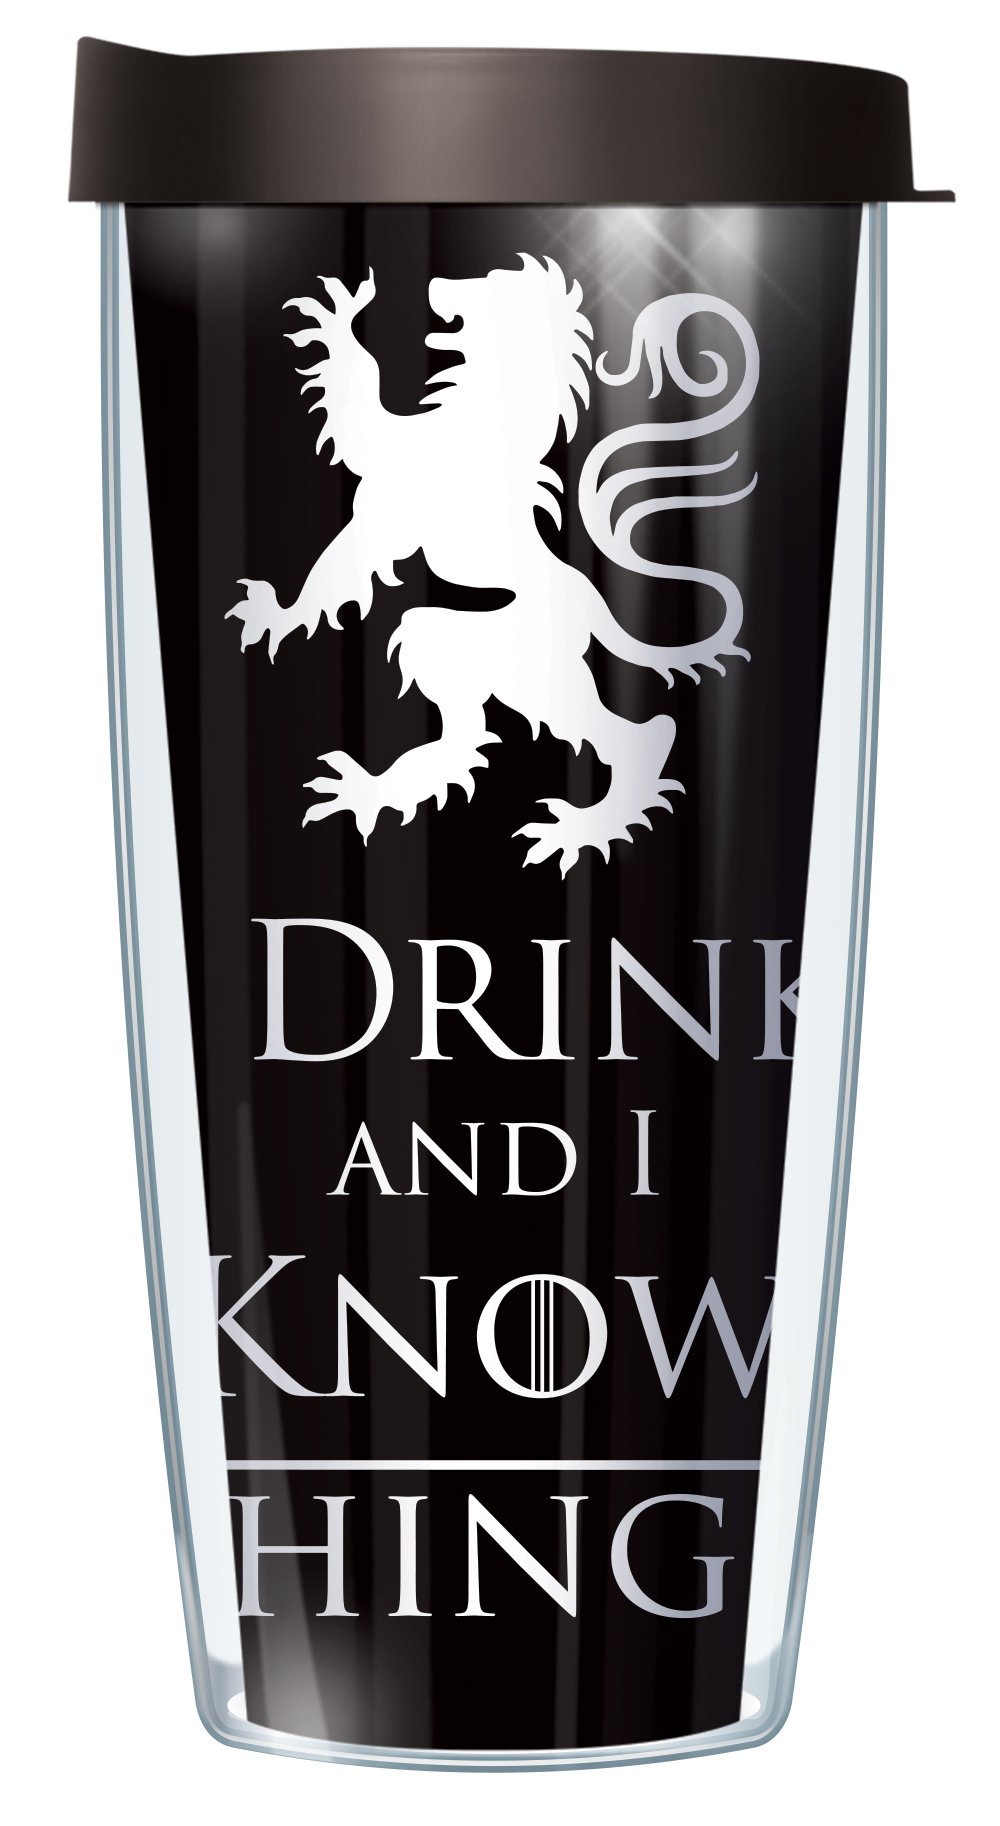 I Drink and I Know Things Funny 16oz Mug Tumbler Cup with Black Lid